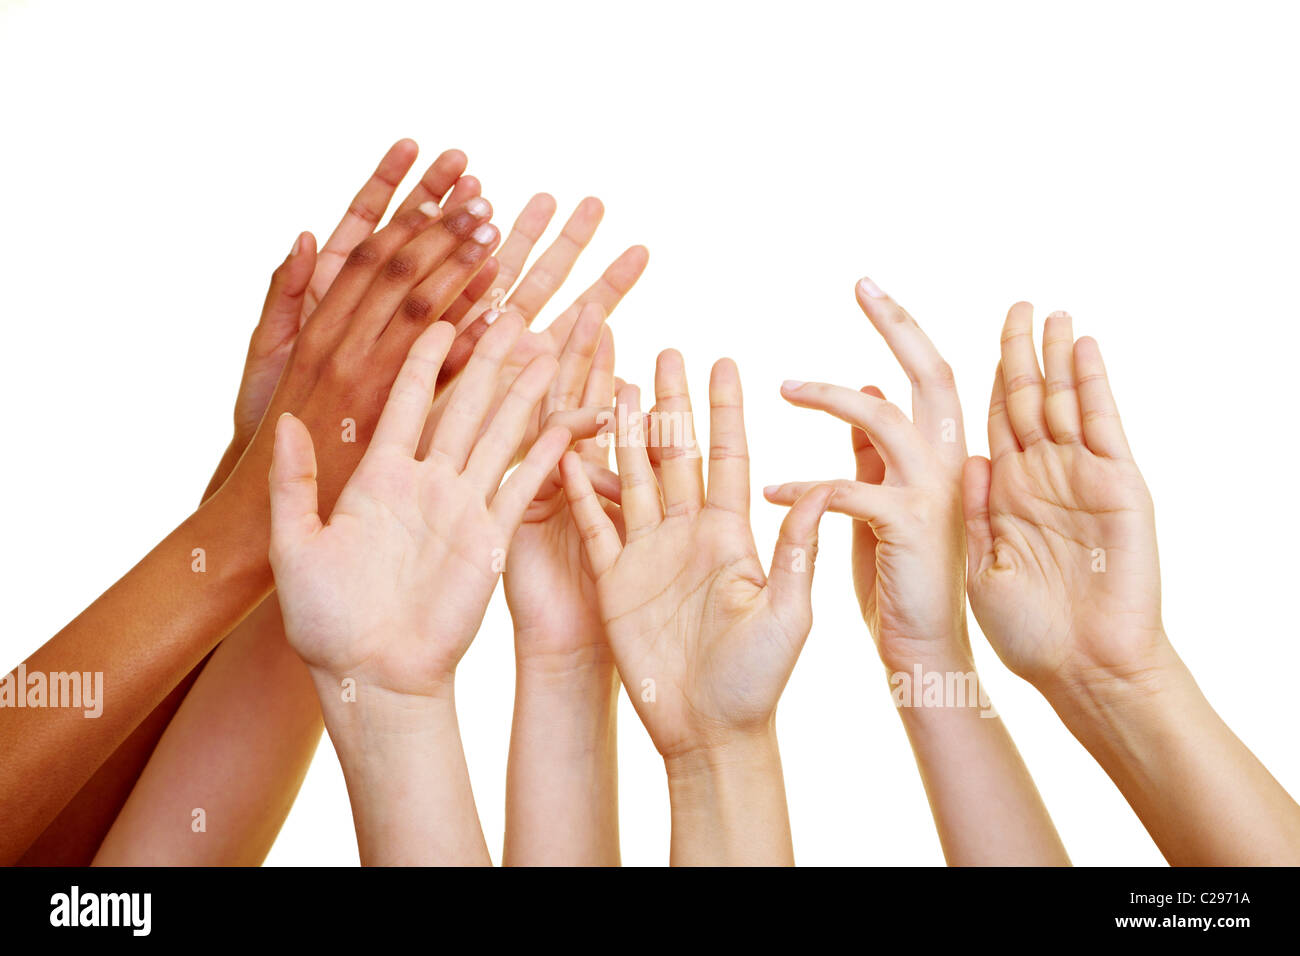 Desperate hands reach up - Stock Image